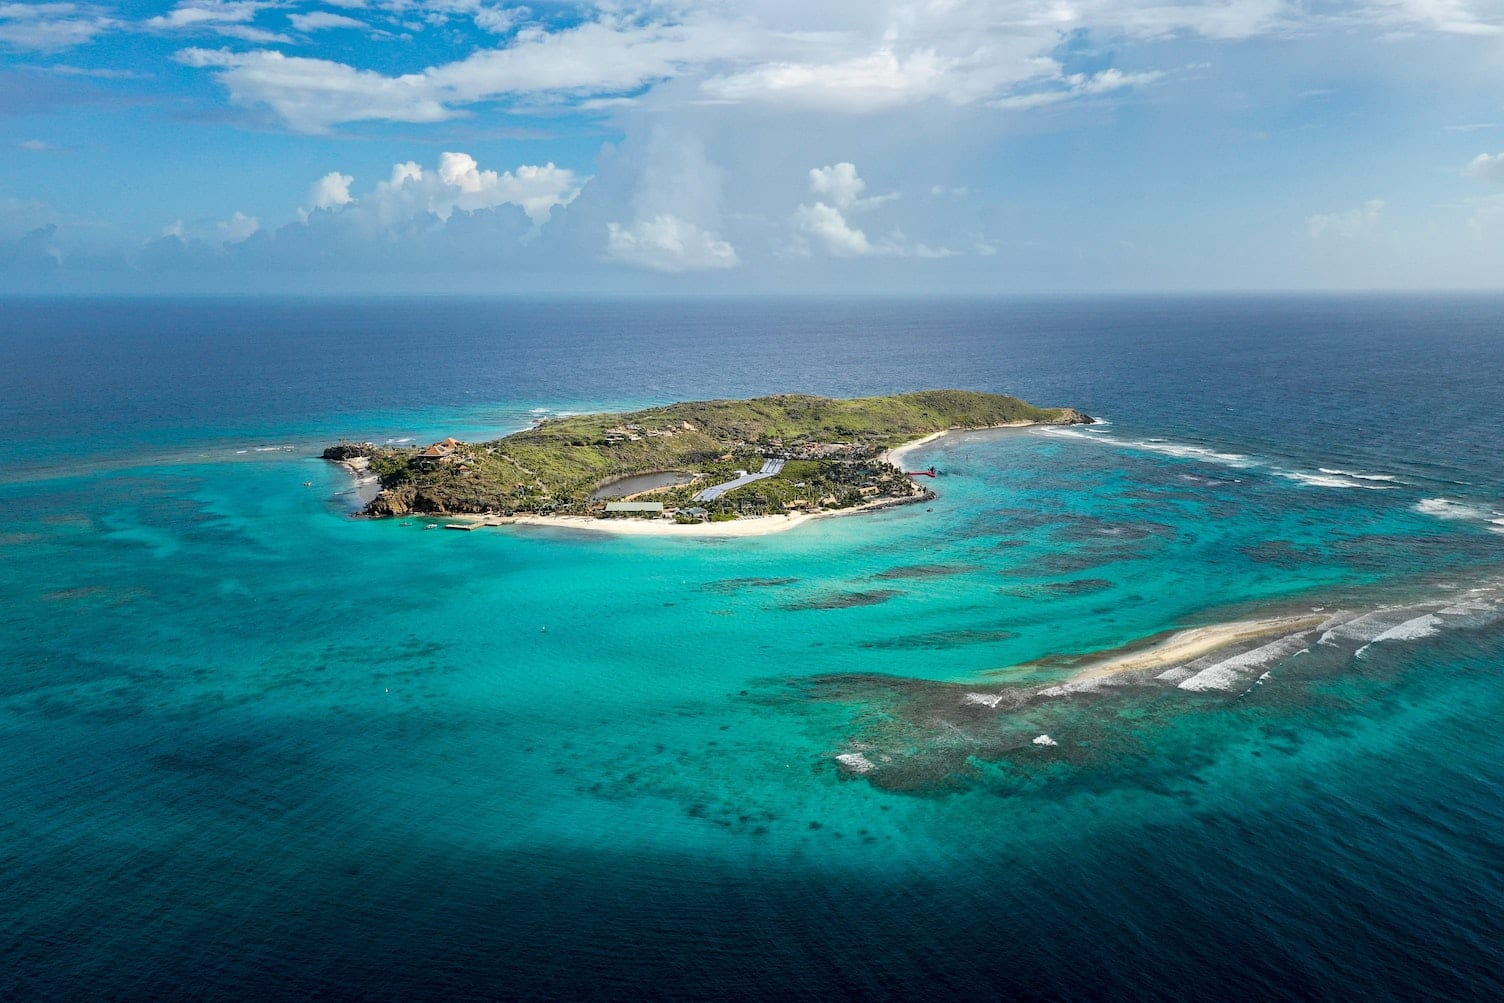 Ariel view of necker island in the bvi